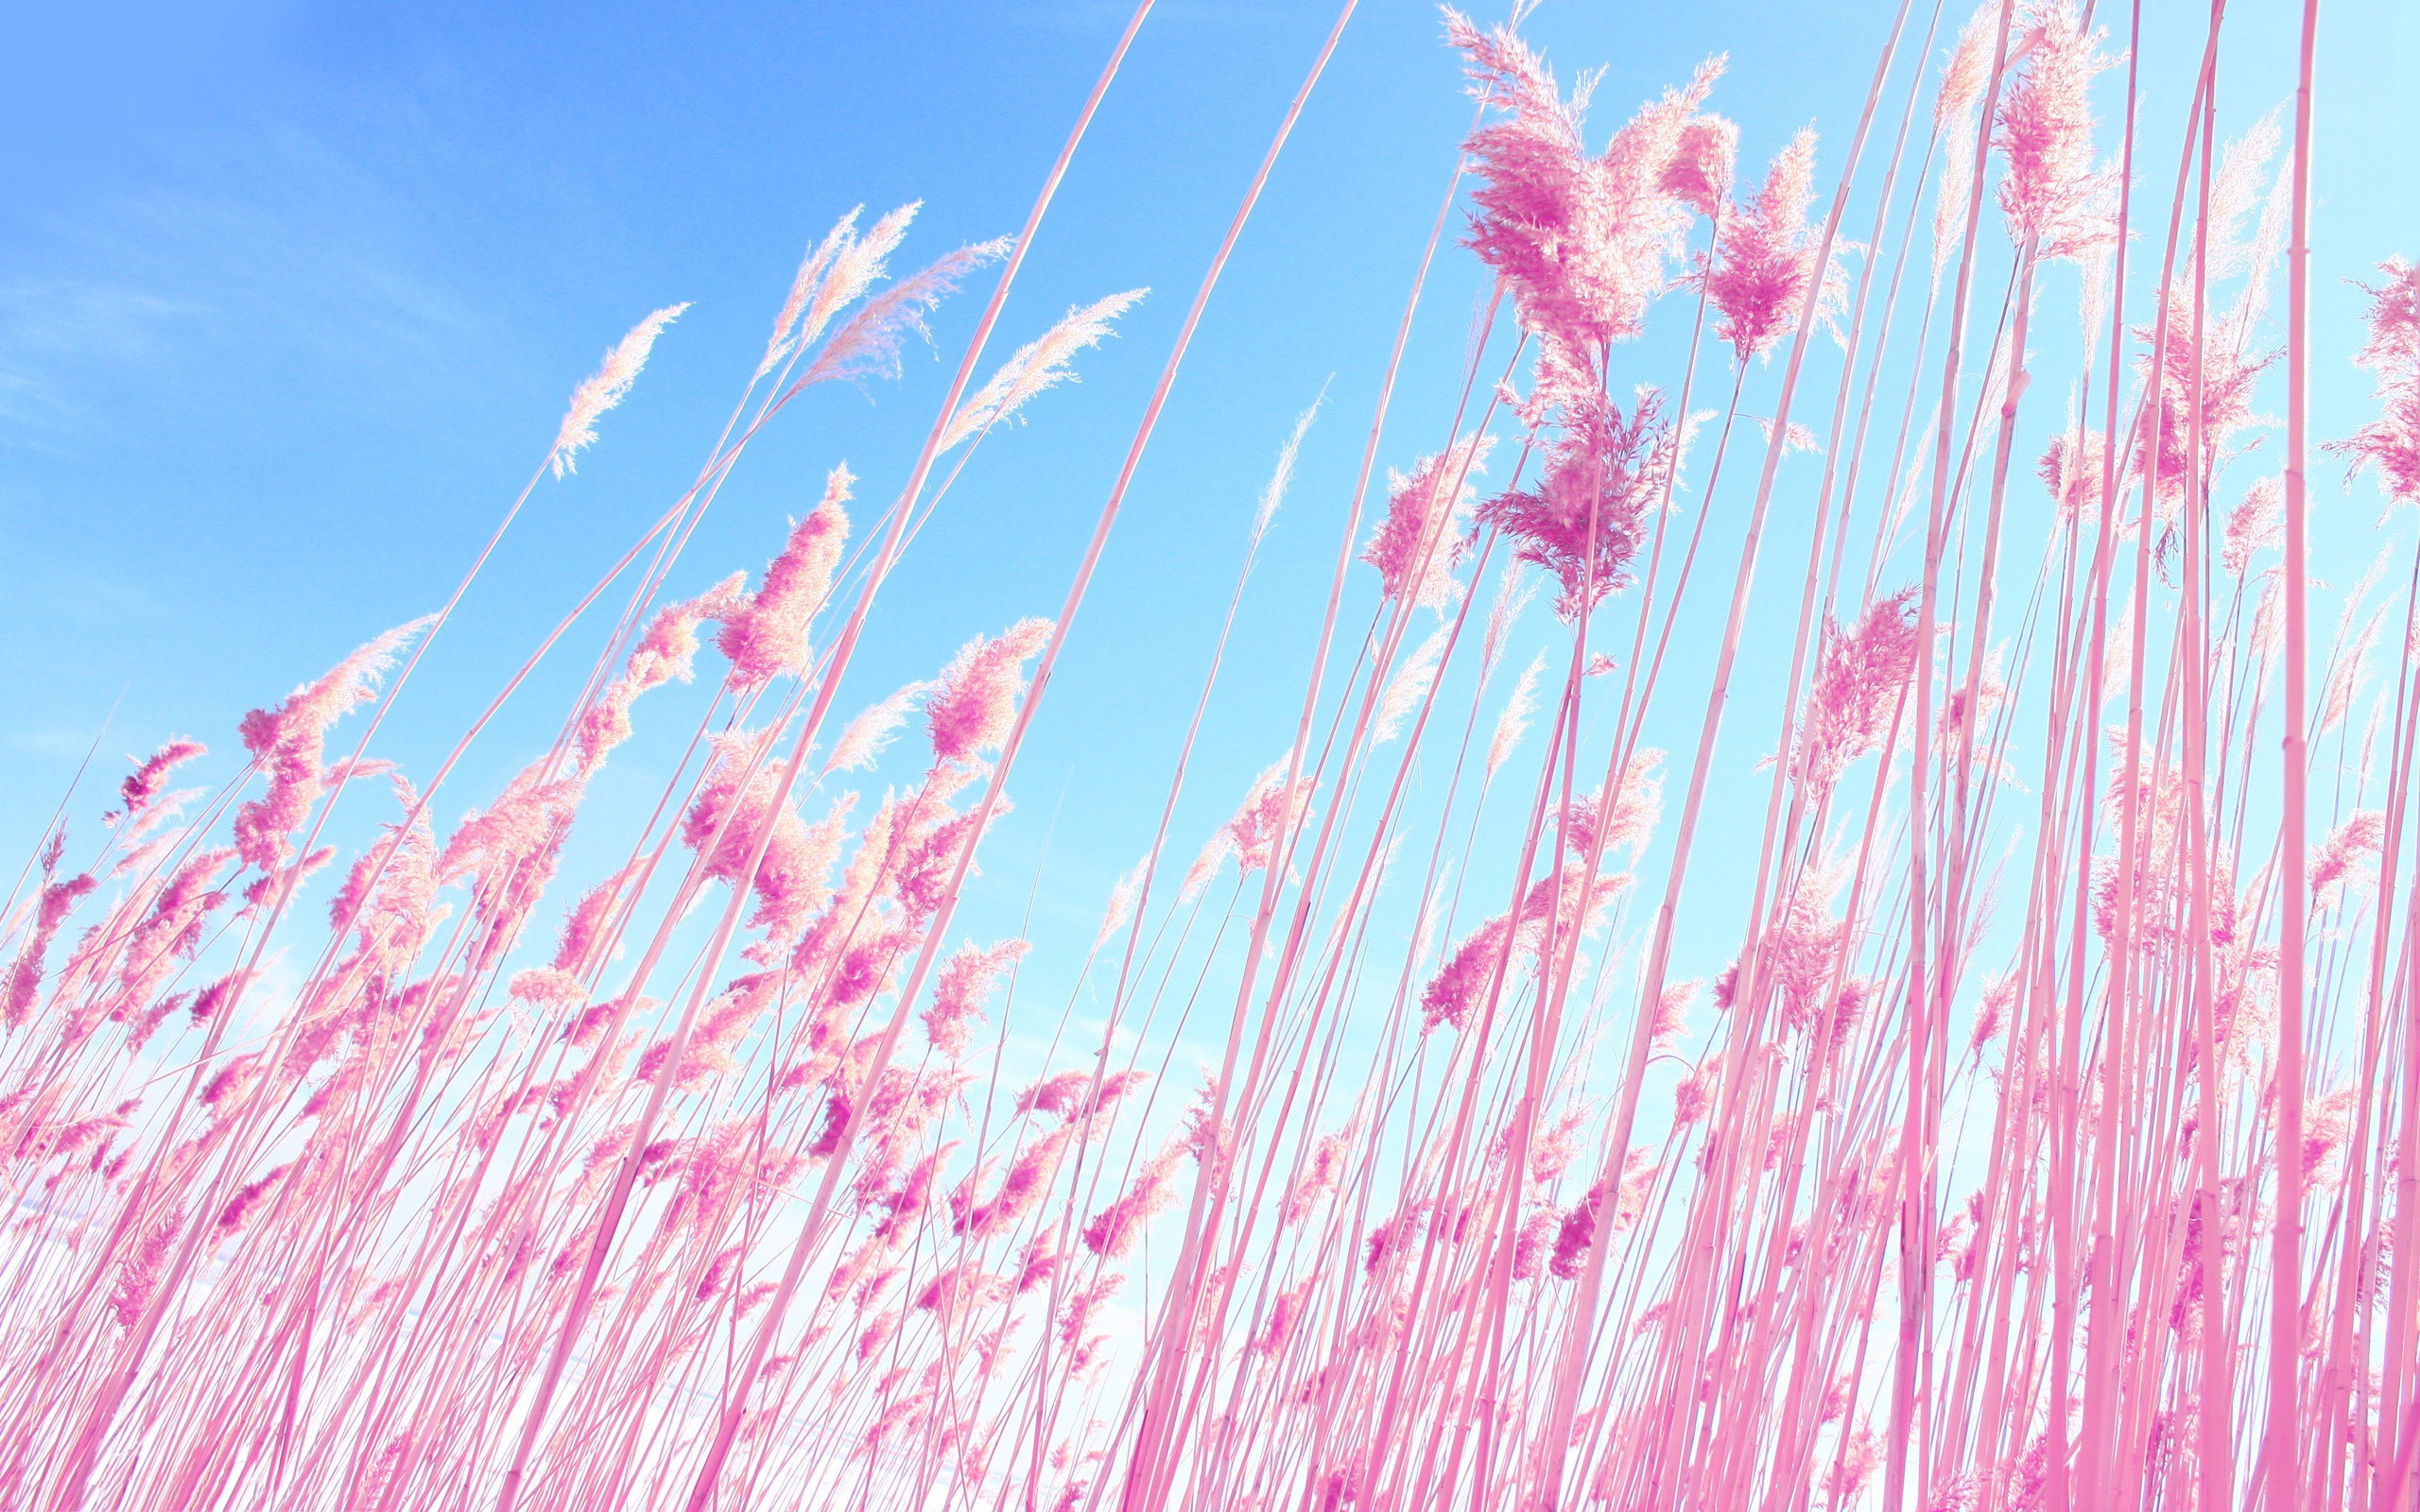 pink reed images